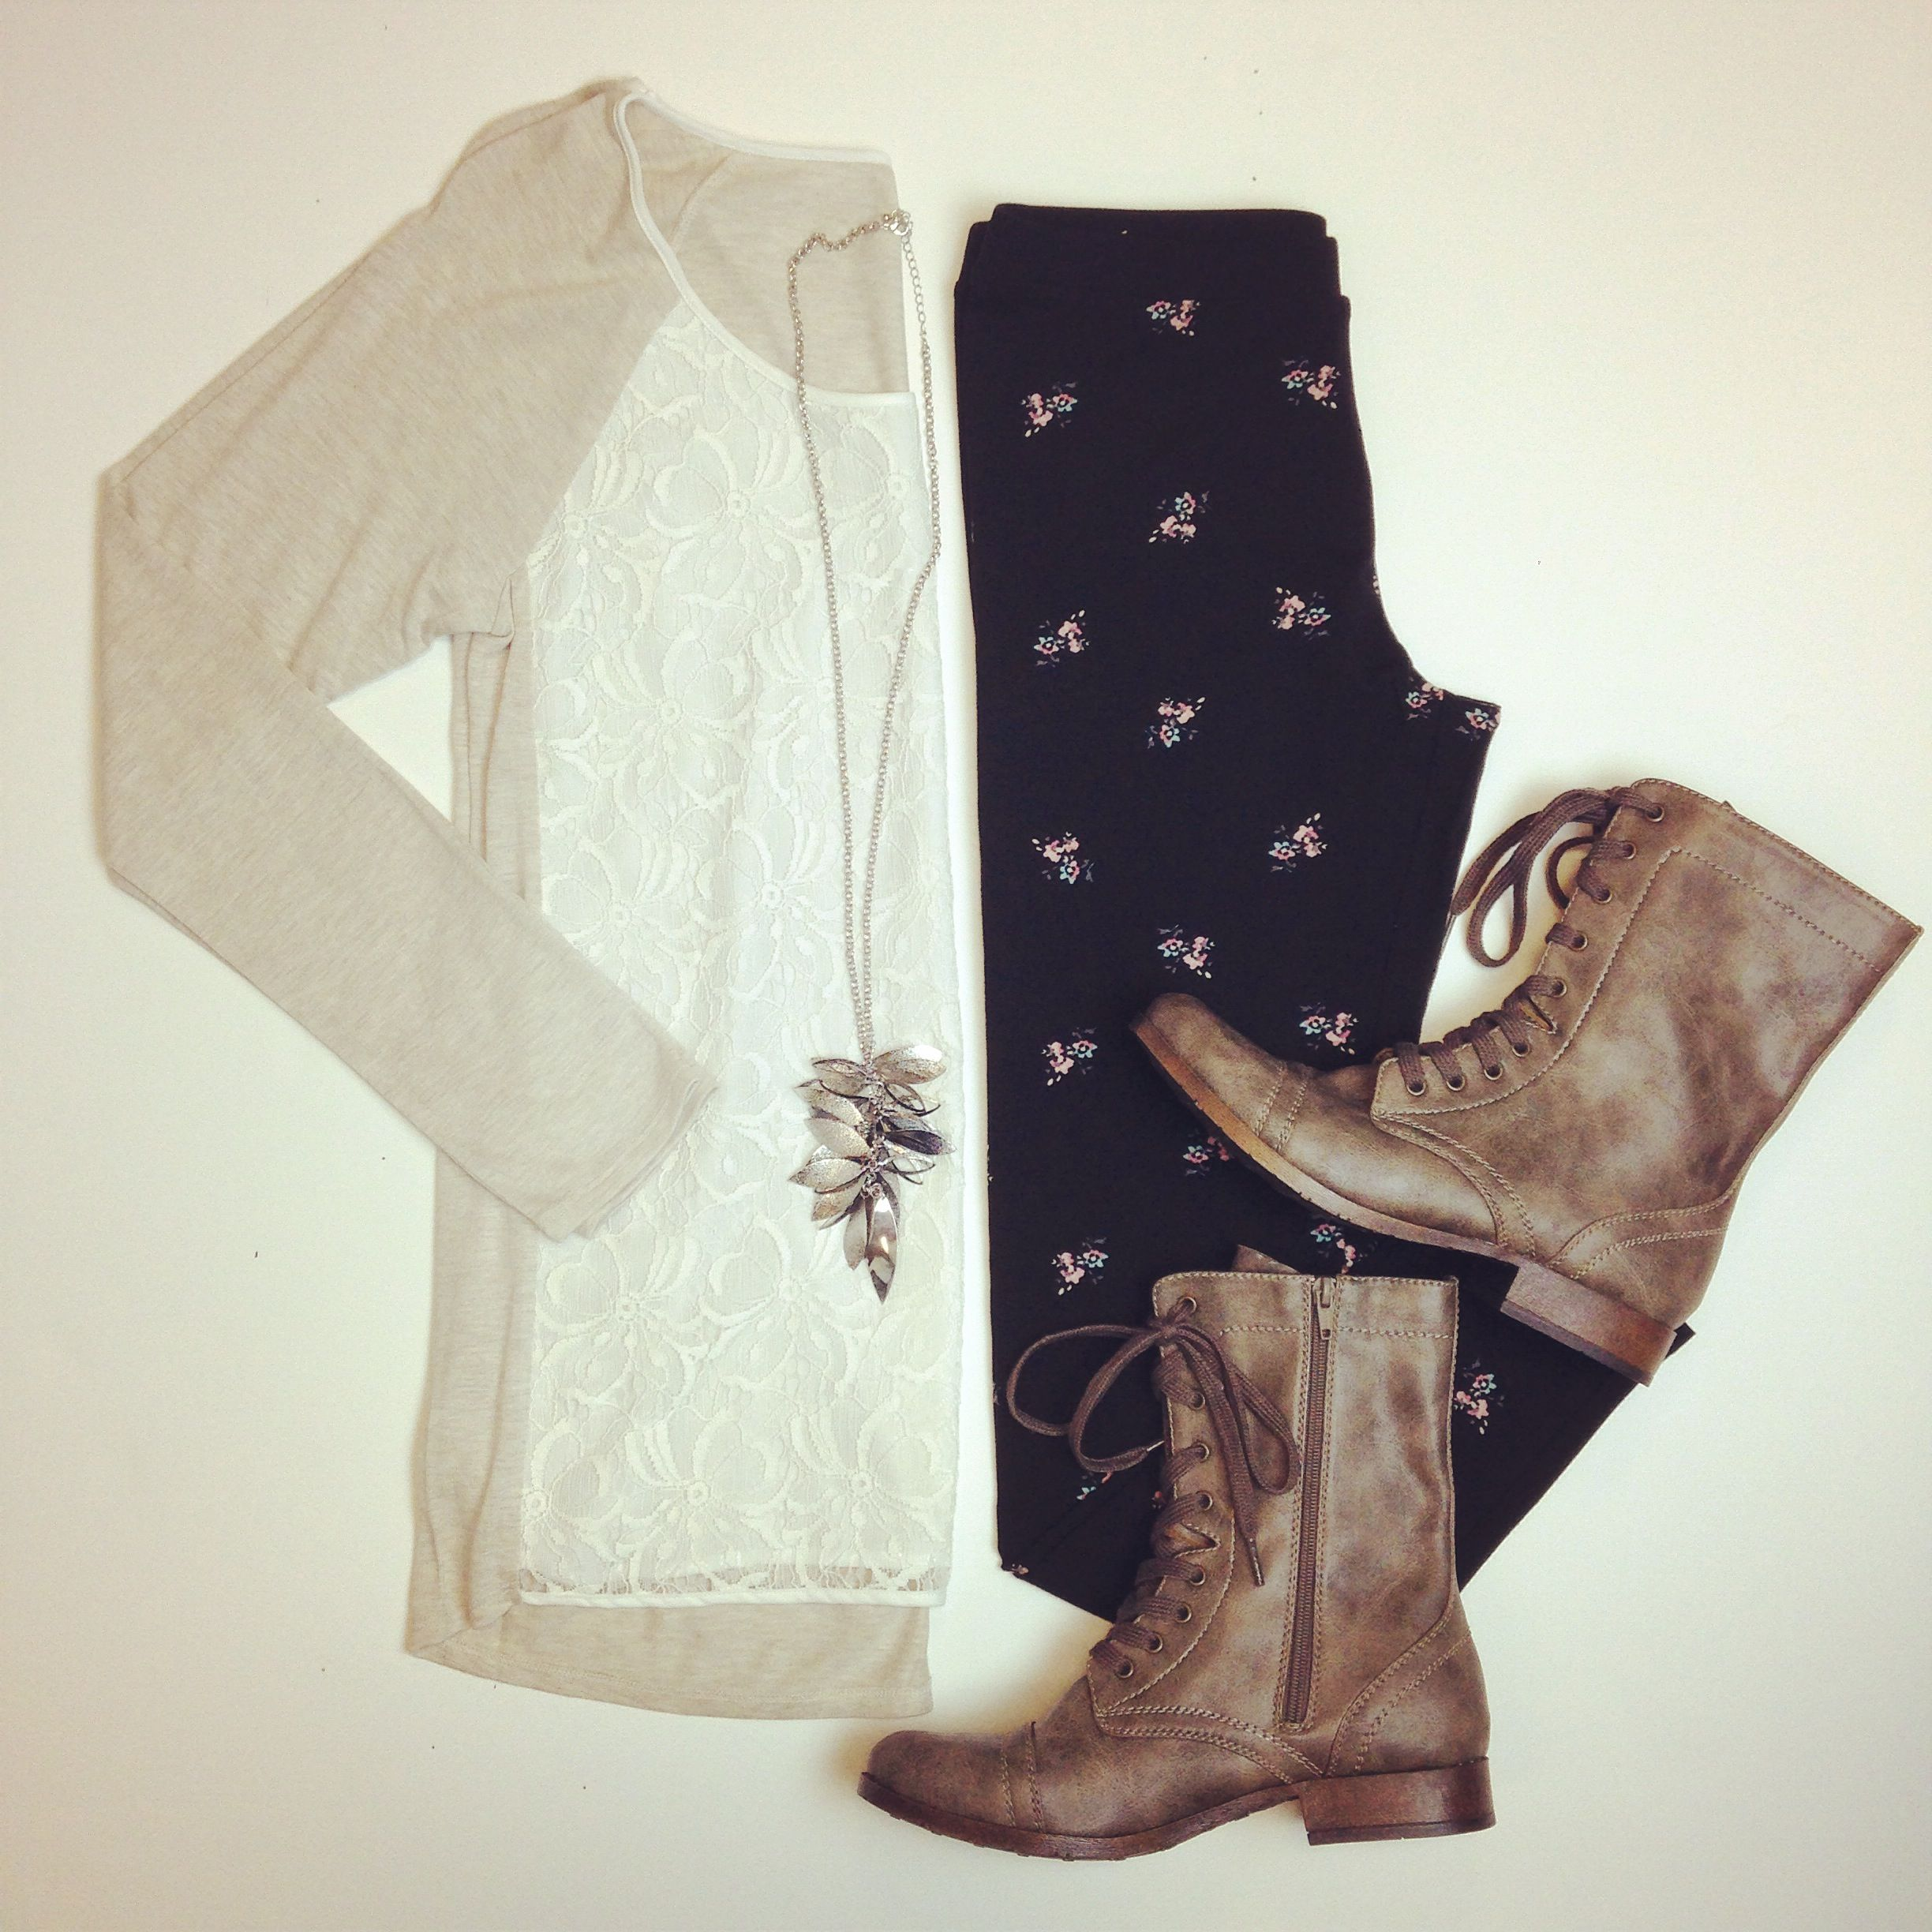 Repin if boot season is your favorite season. #ootd #Kohls